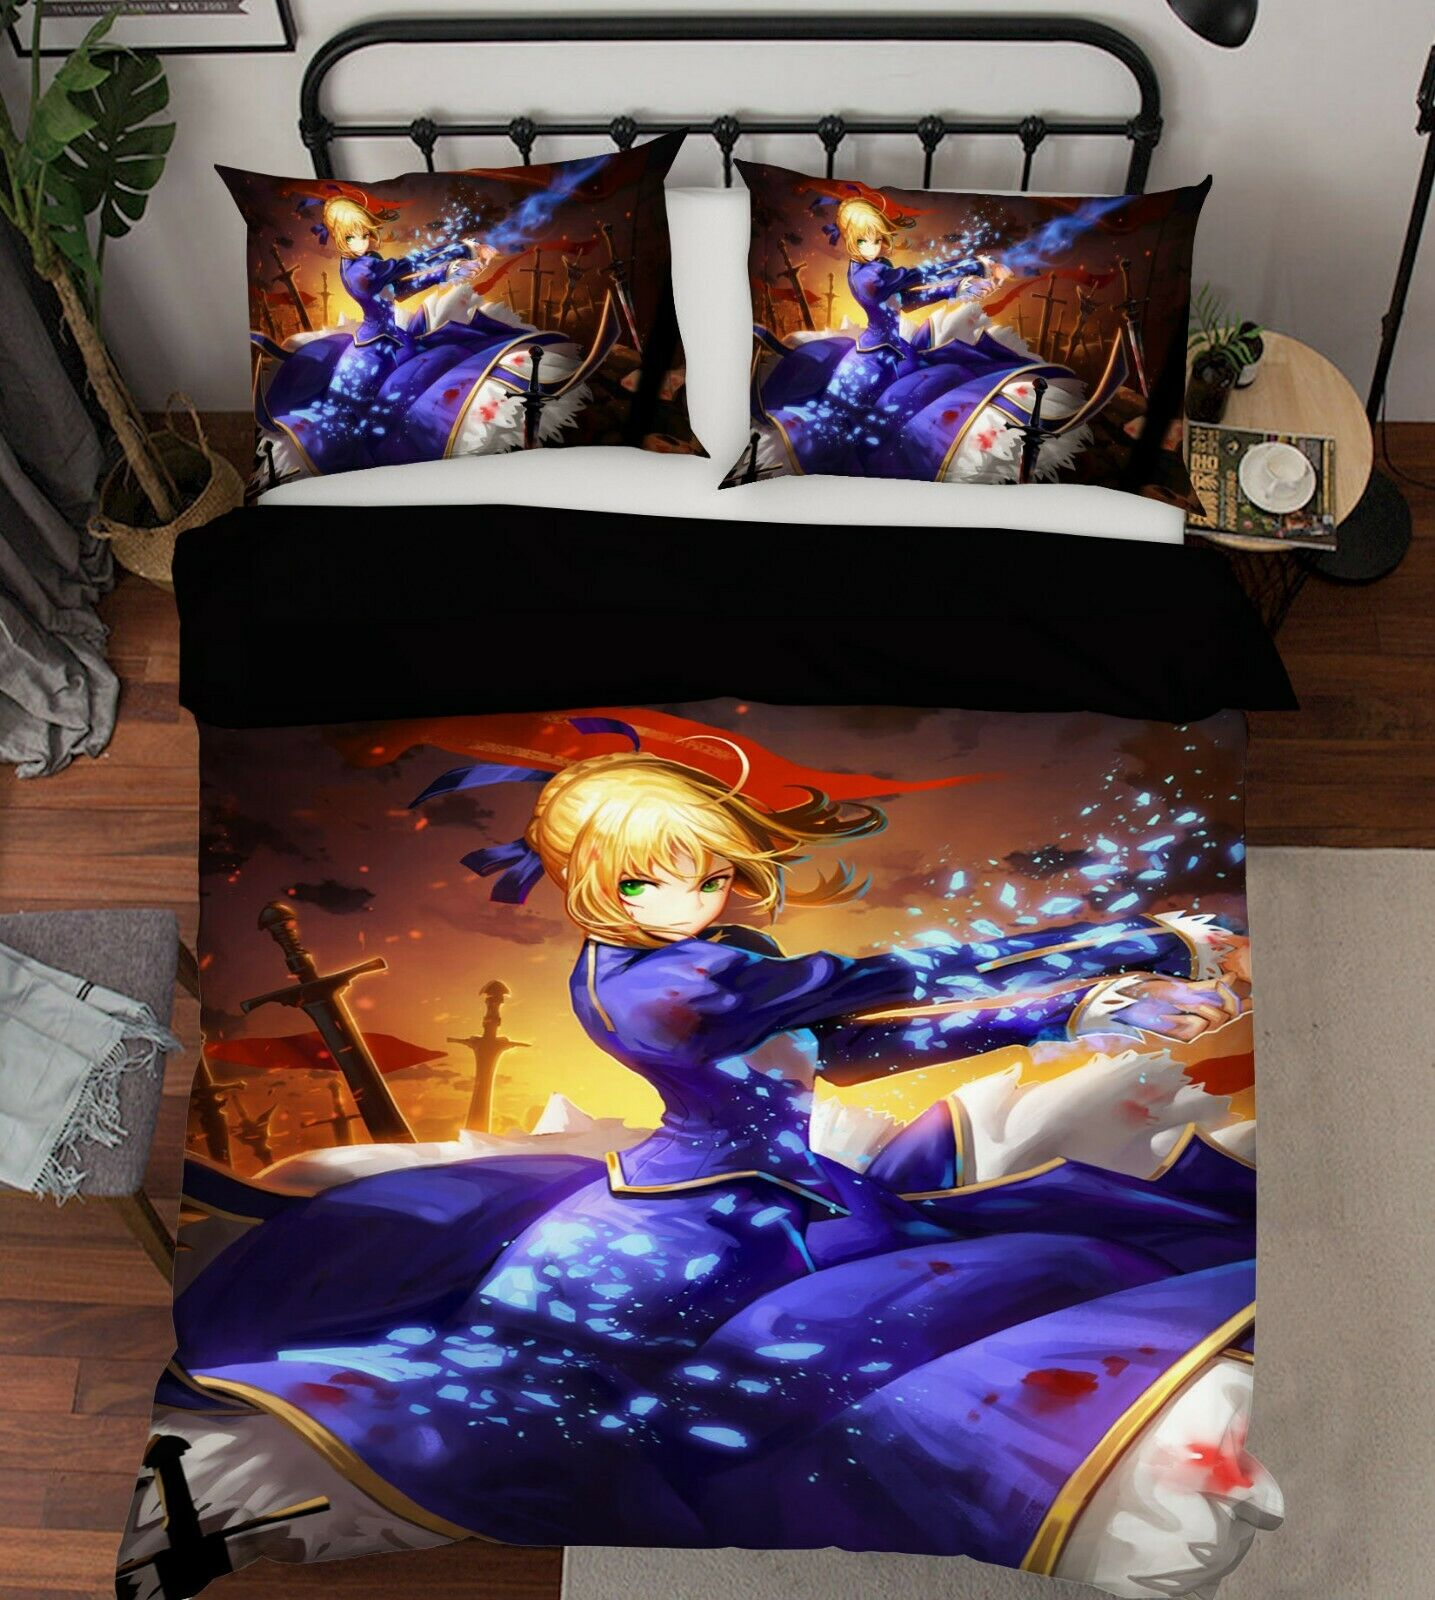 3D Fate Saber O215 Japan Anime Bed Pillowcases Quilt Cover Duvet Amy